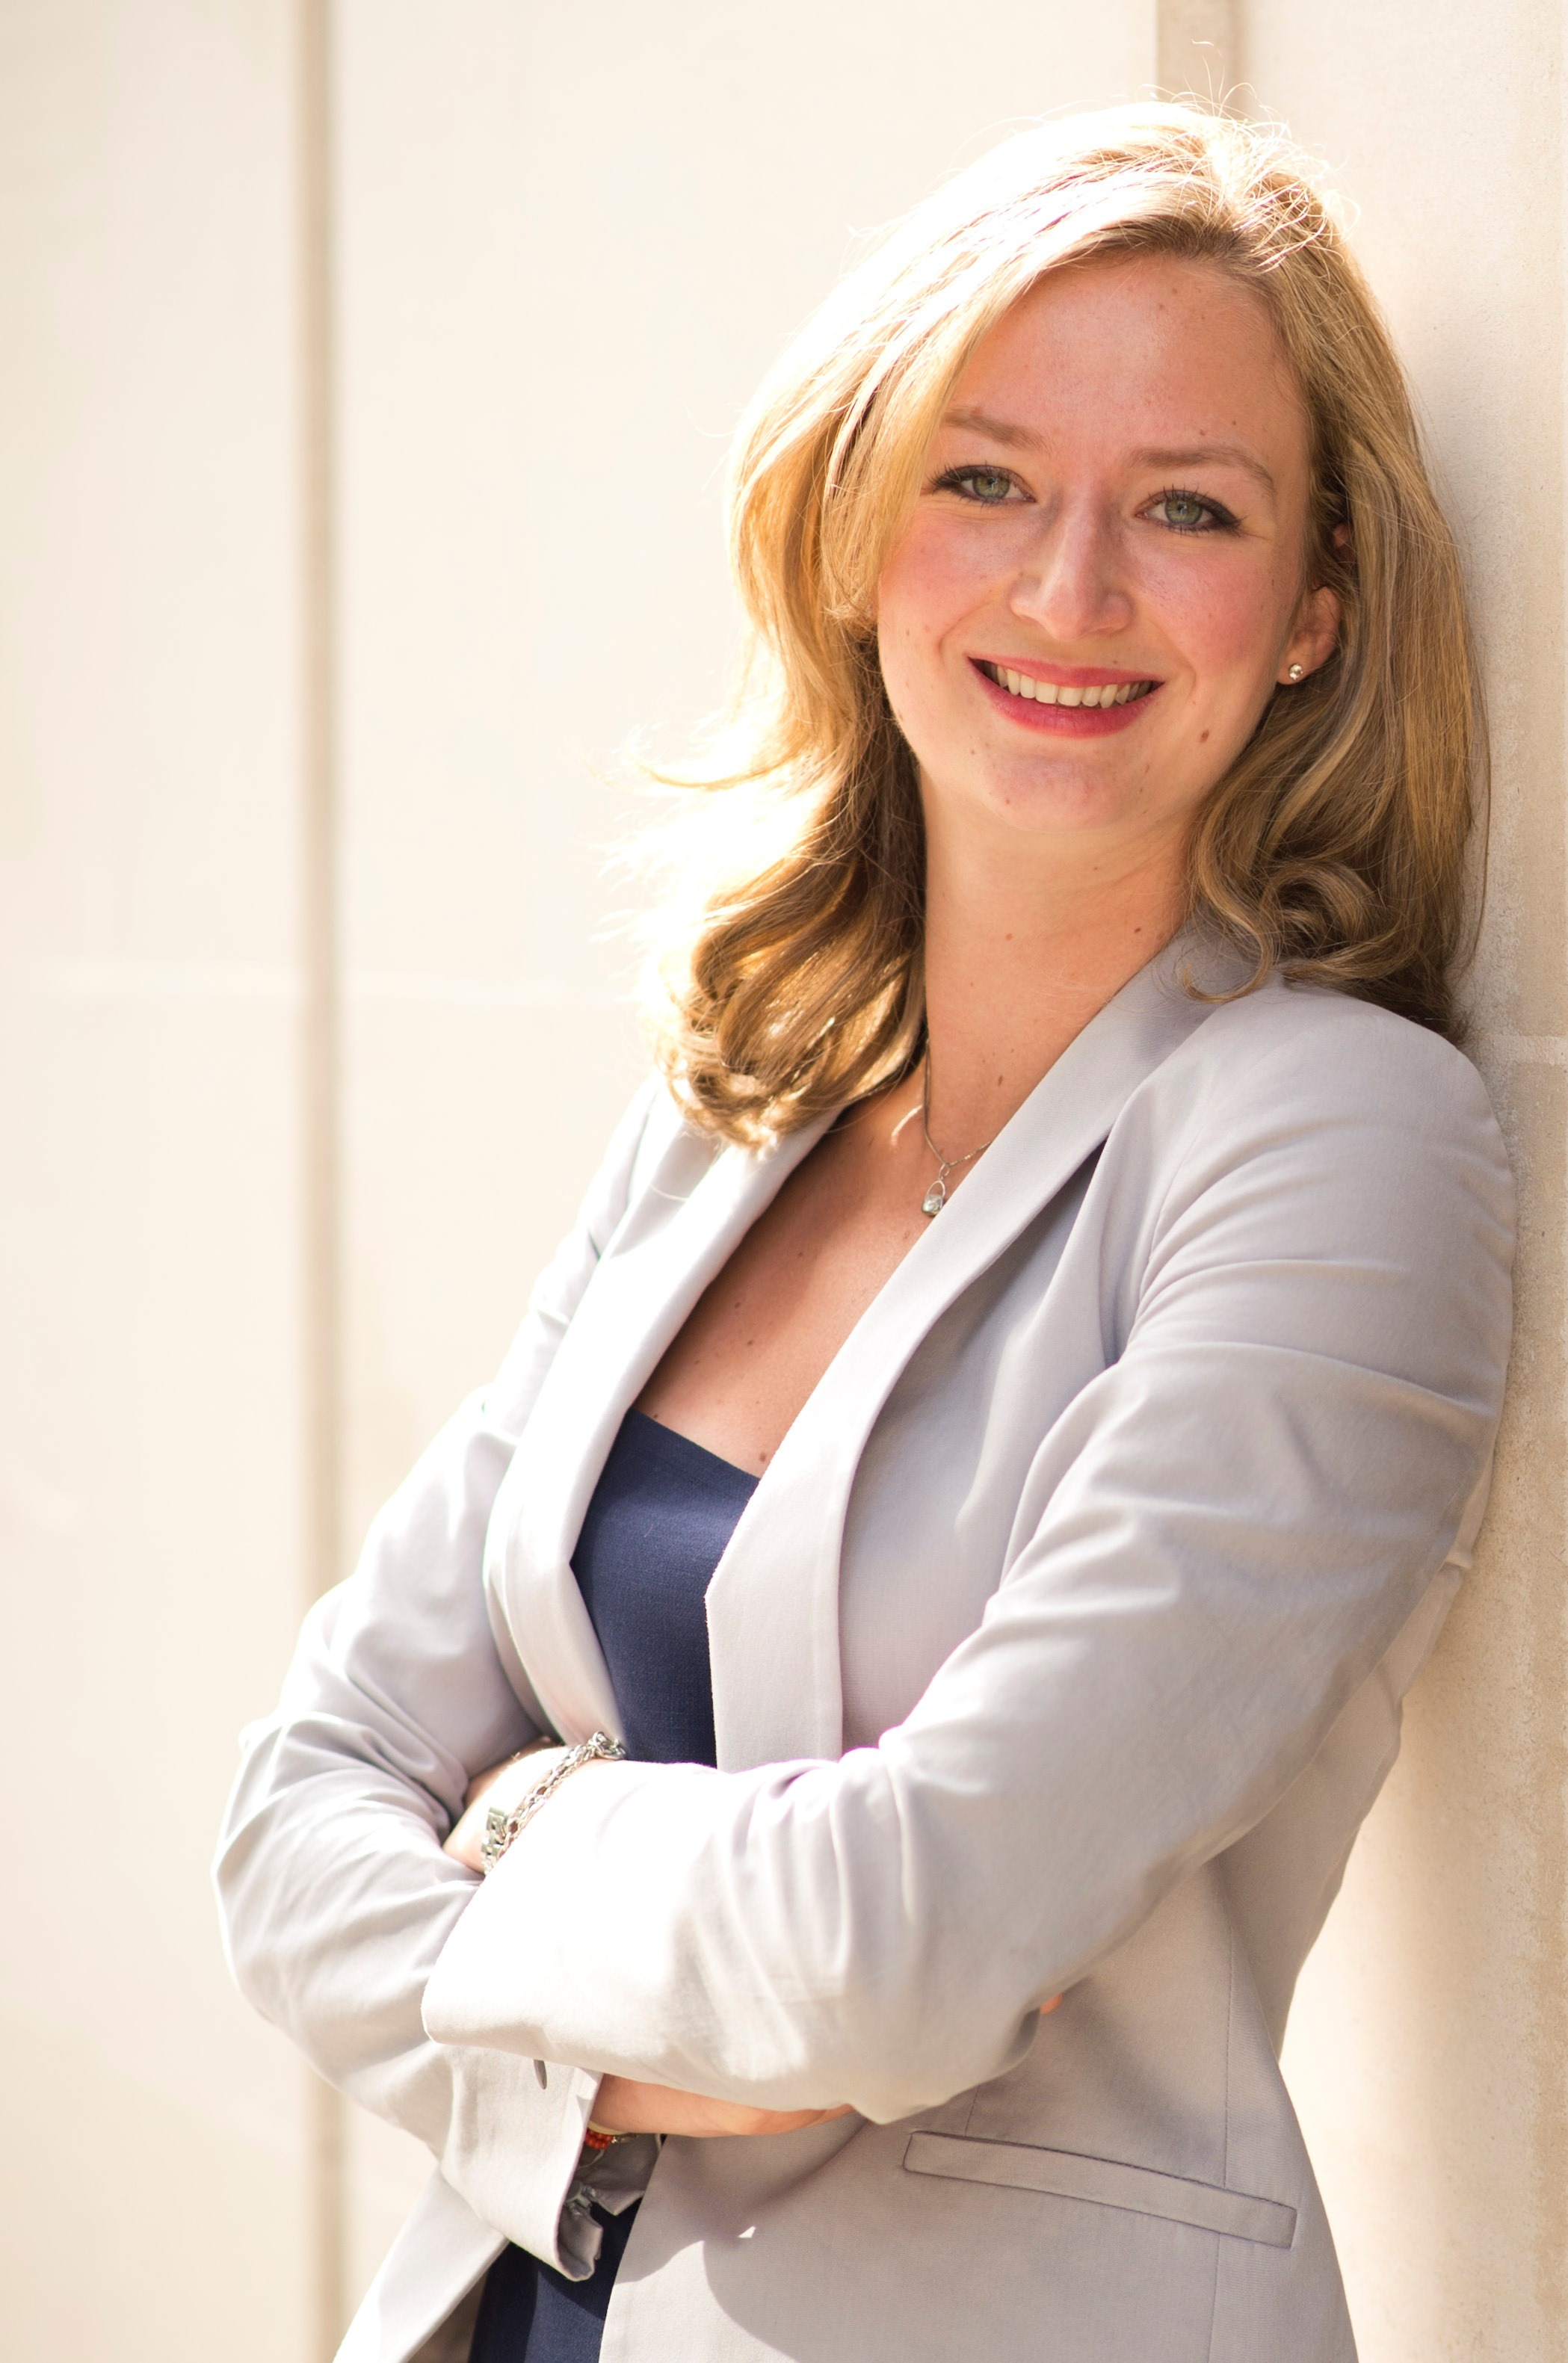 Adelle Gruber, Professional Lines Underwriter, ACE Global Markets (Photo: Business Wire)